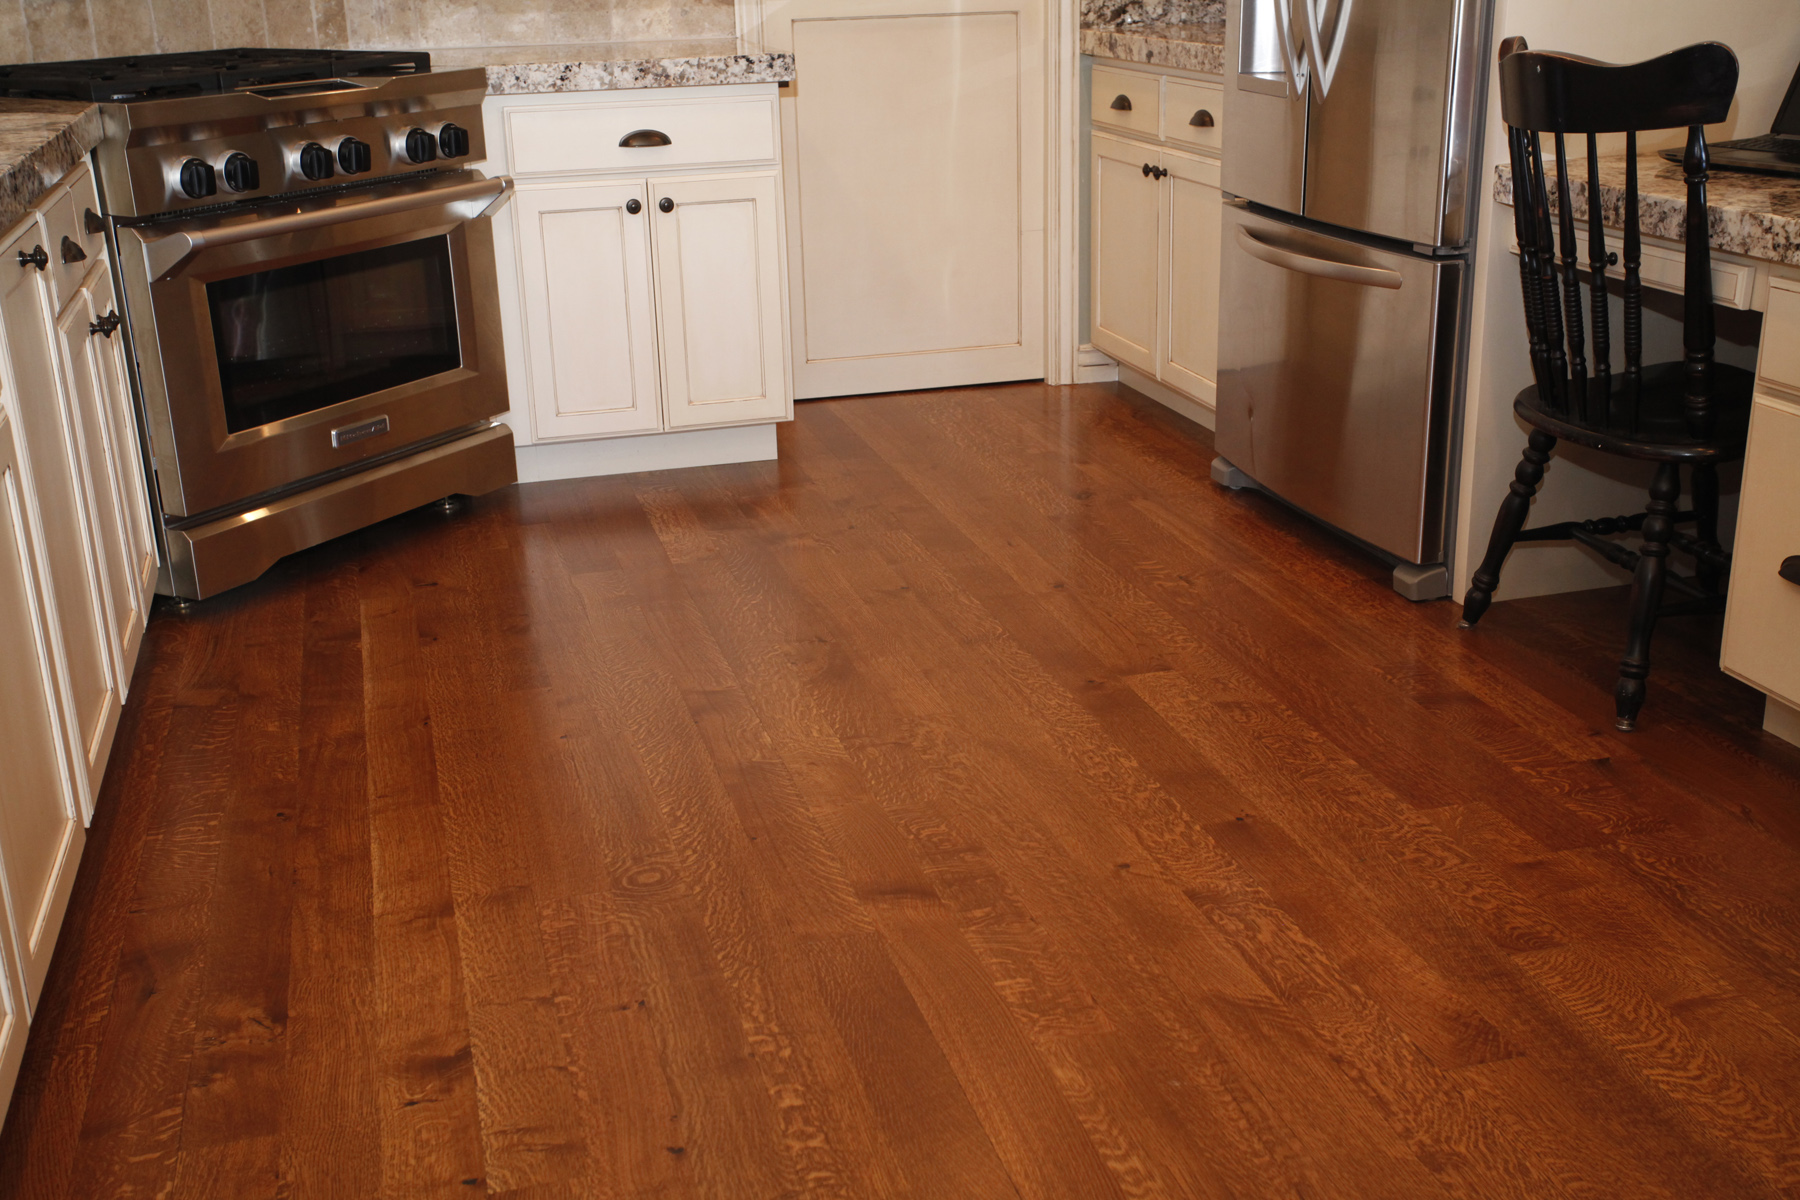 Hardwood Floor In The Kitchen Carsons Custom Hardwood Floors Utah Hardwood Flooring A Kitchens